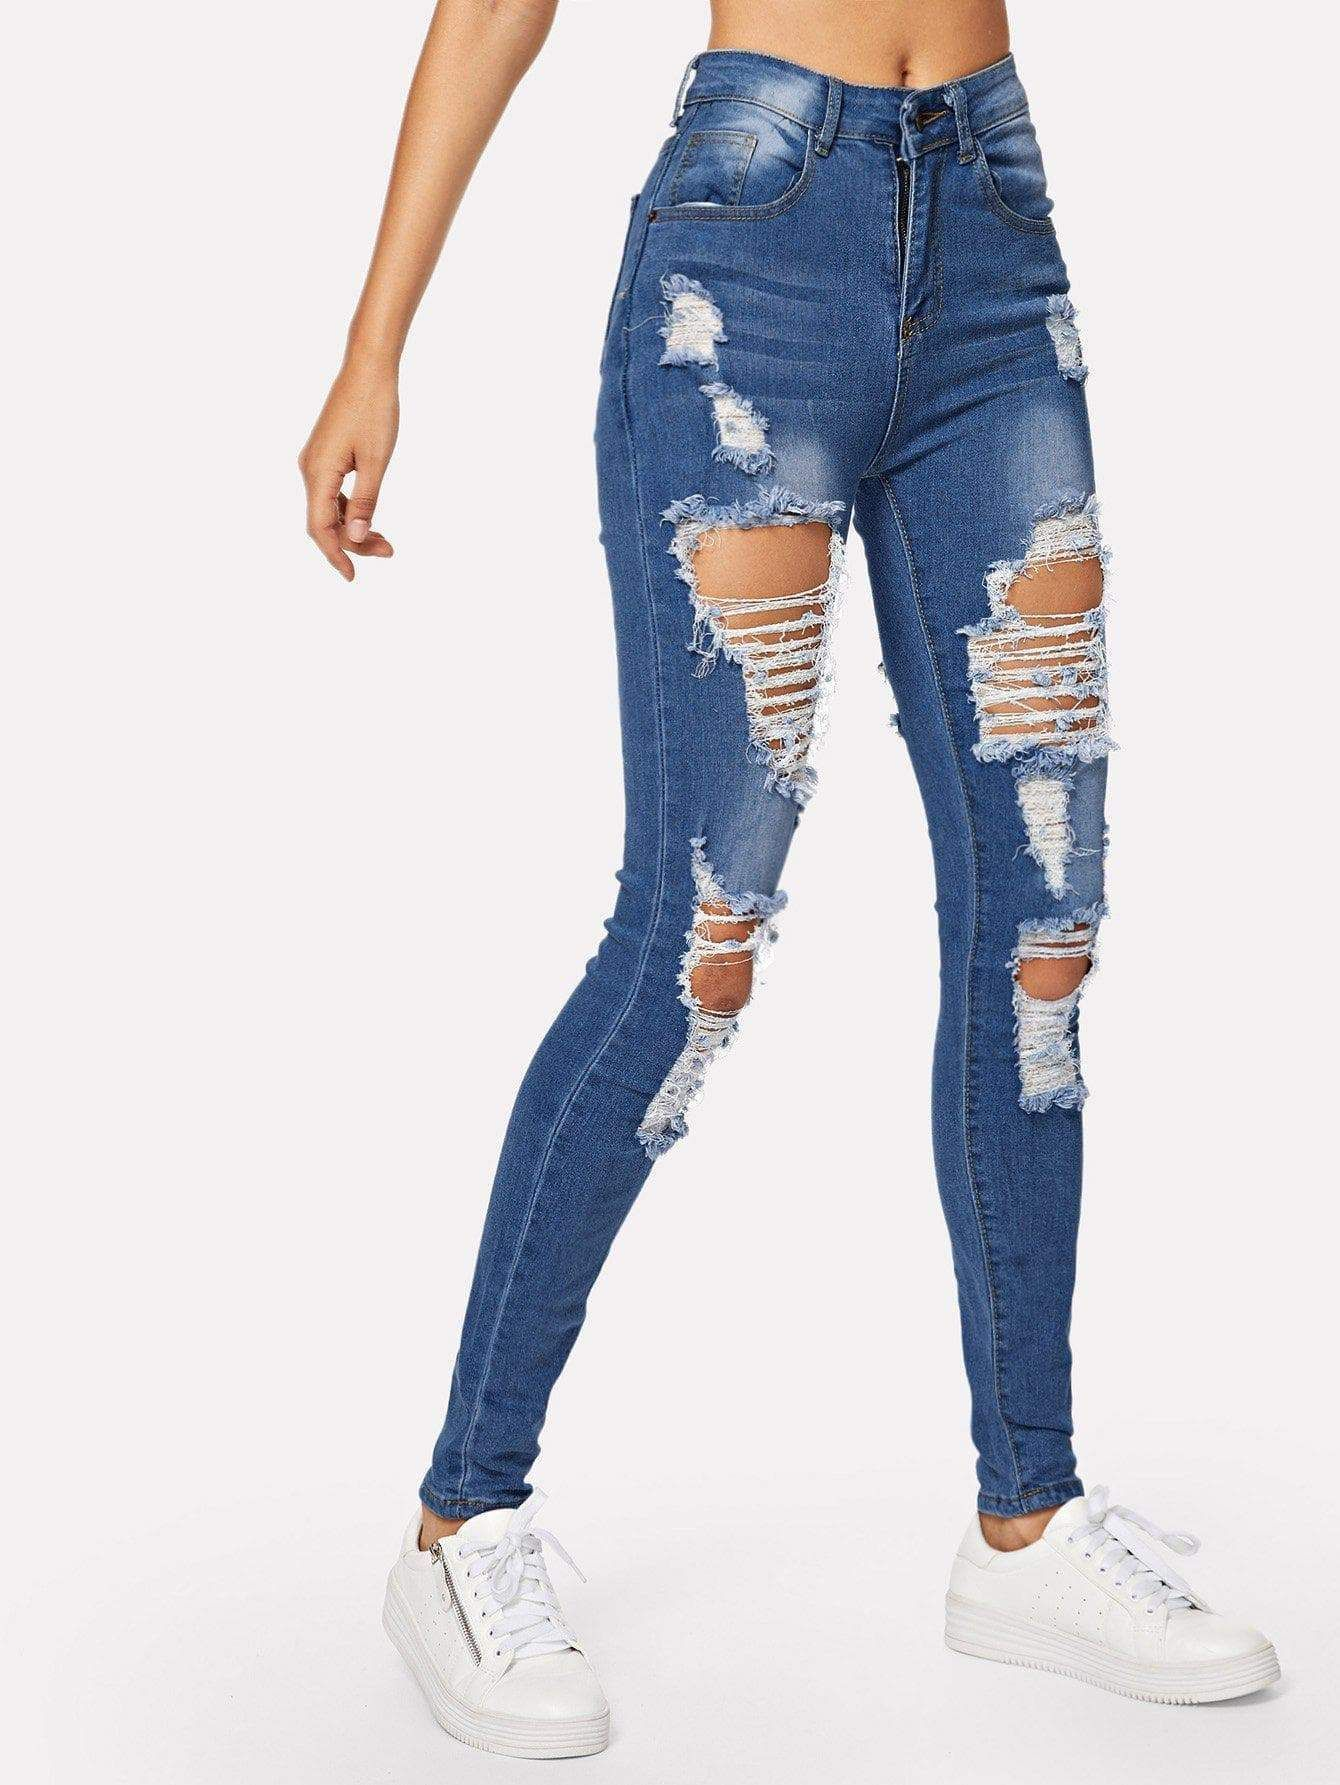 Pin by Apparel & Accessories on Jeans   Cute ripped jeans, Womens ...